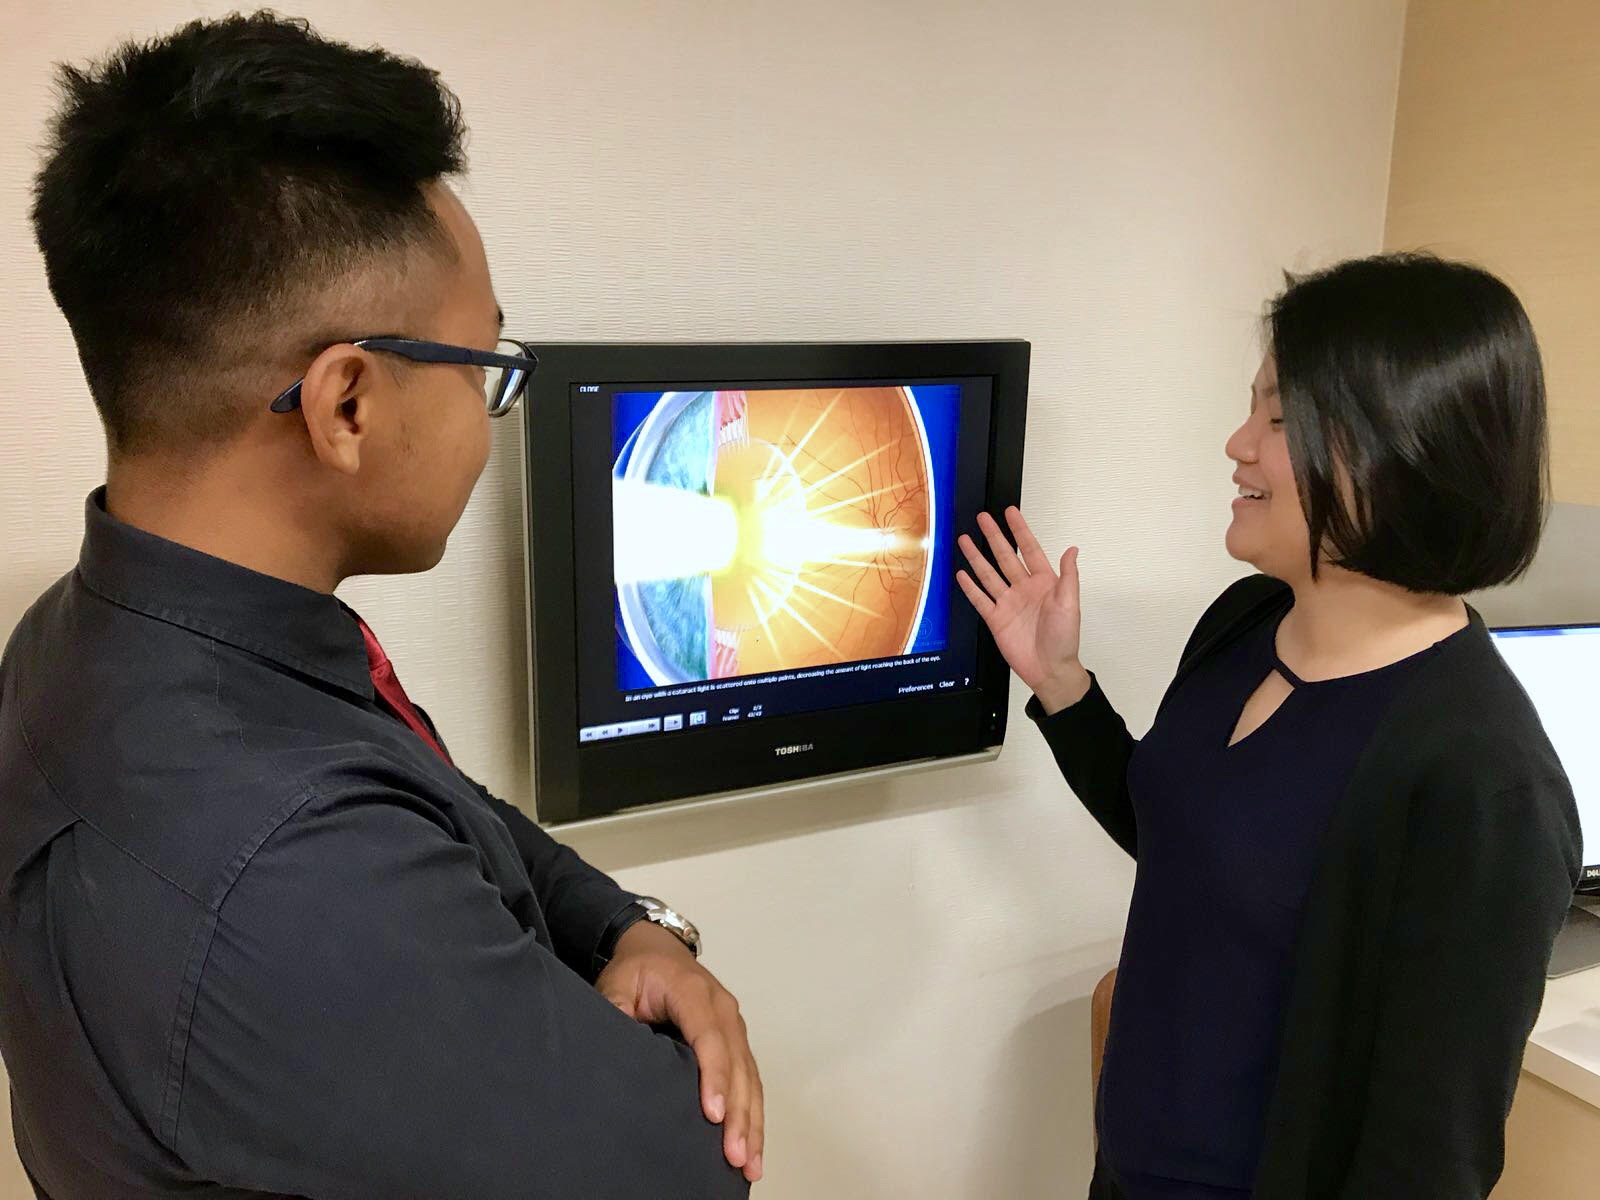 Optometrist and clinic manager Olga Aprianti Lee (right eye) explaining to me how the clinic uses videos to improve the understanding of eye conditions for patients in the clinic